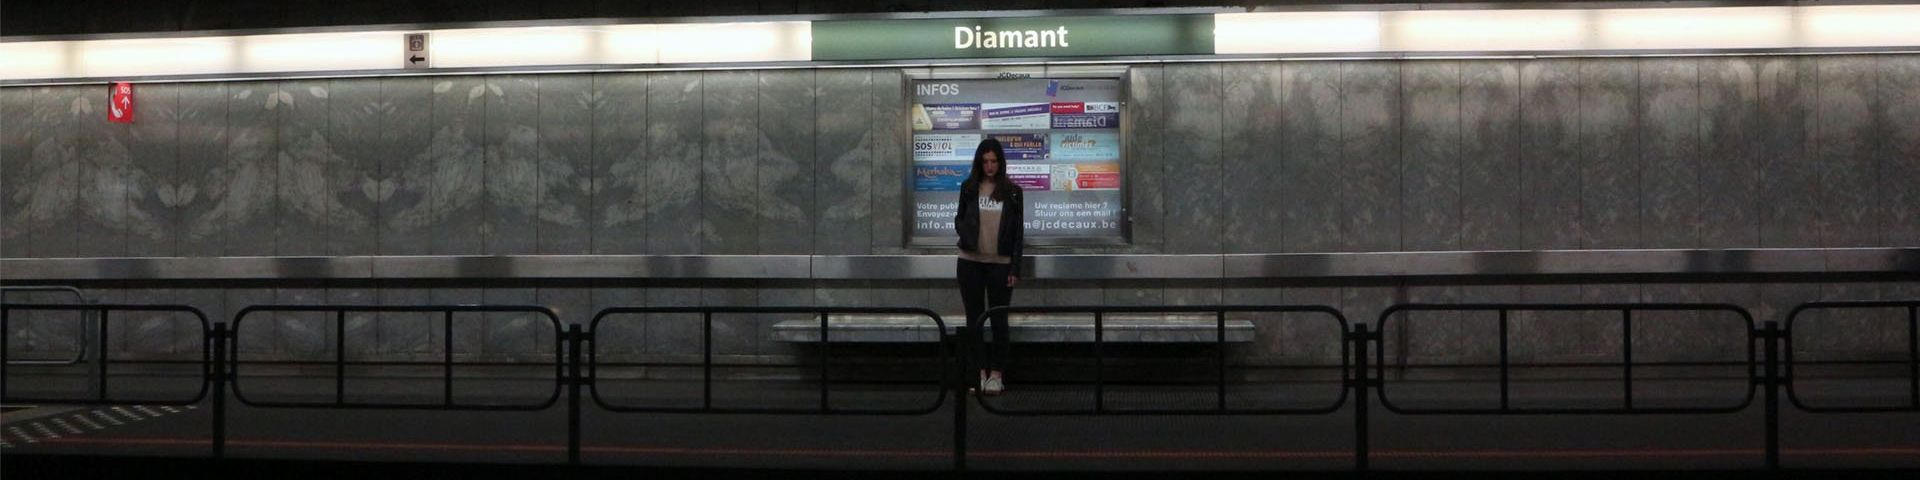 A young woman stands alone on a train platform.